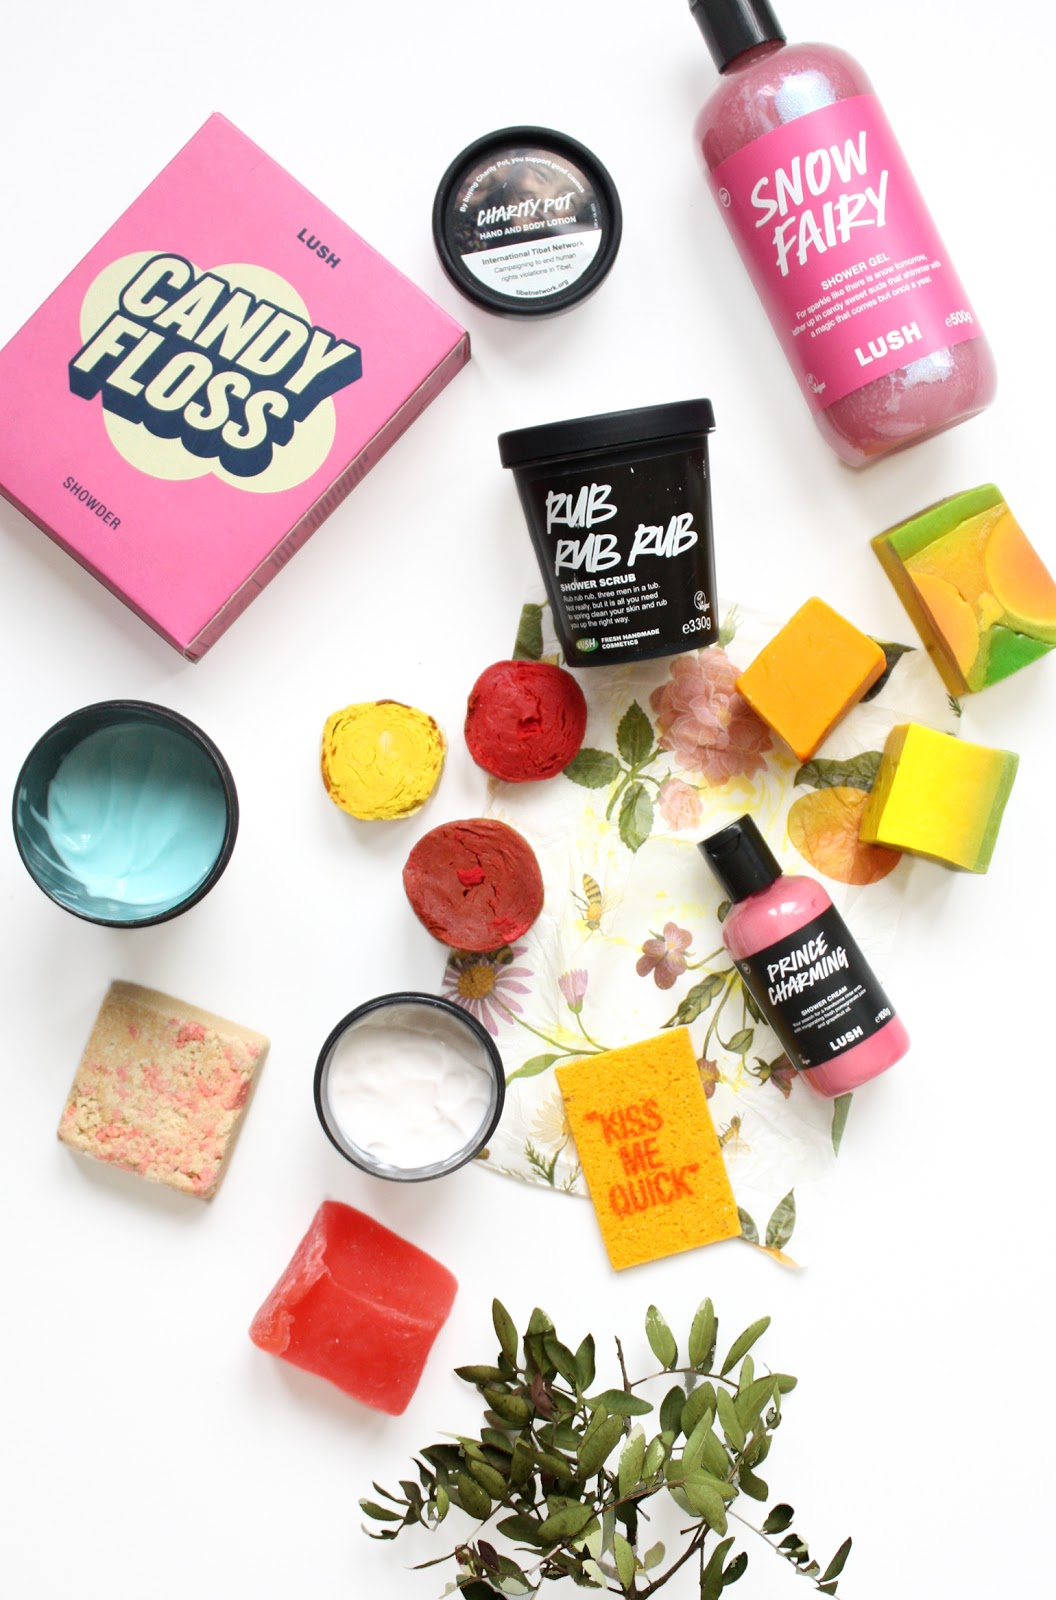 lush shower body products exclusives